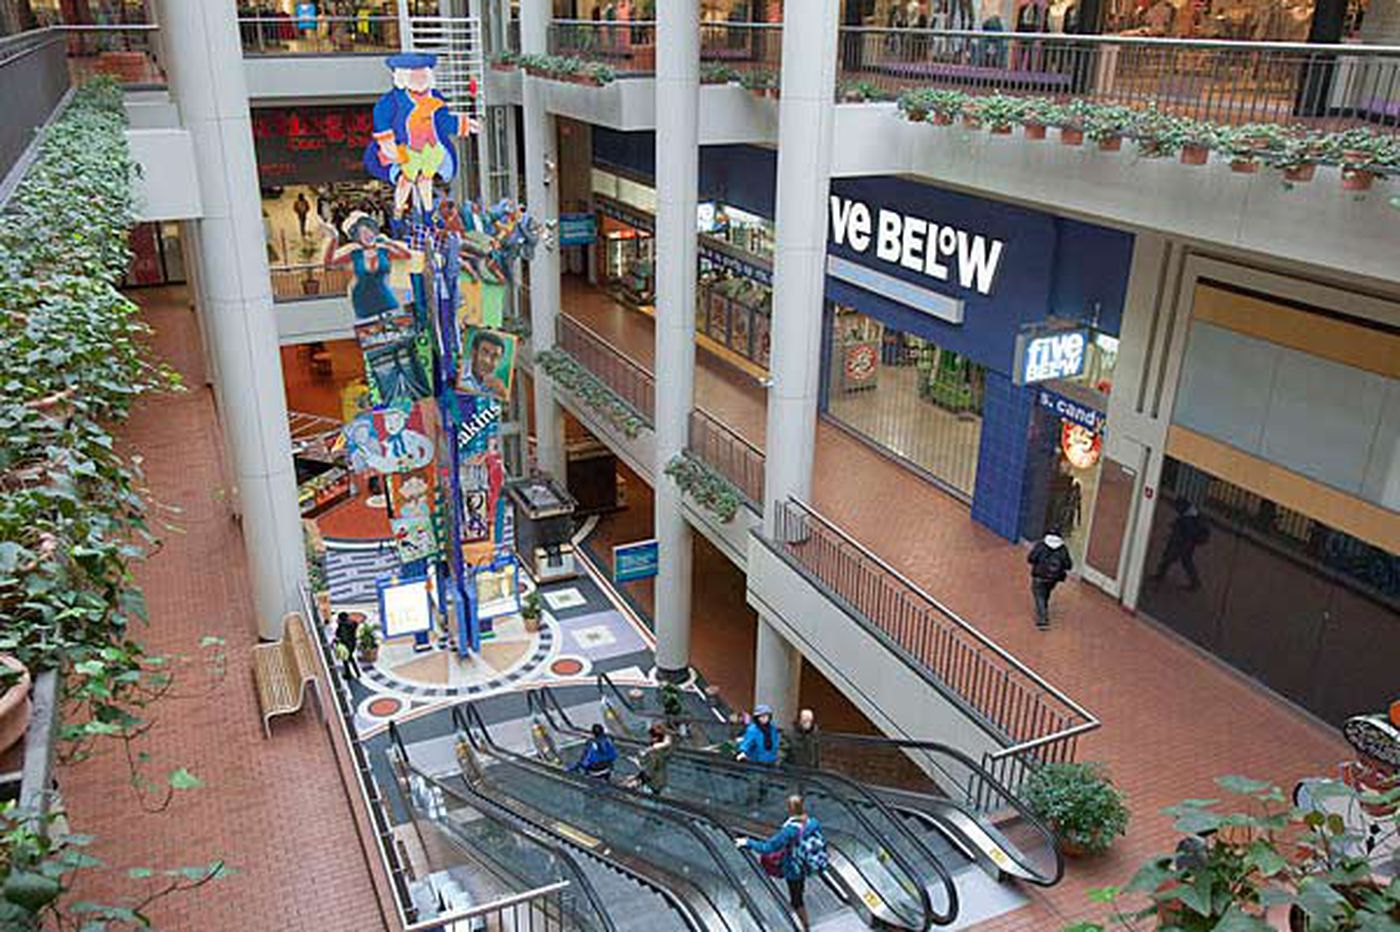 The Gallery mall is ripe for rebirth